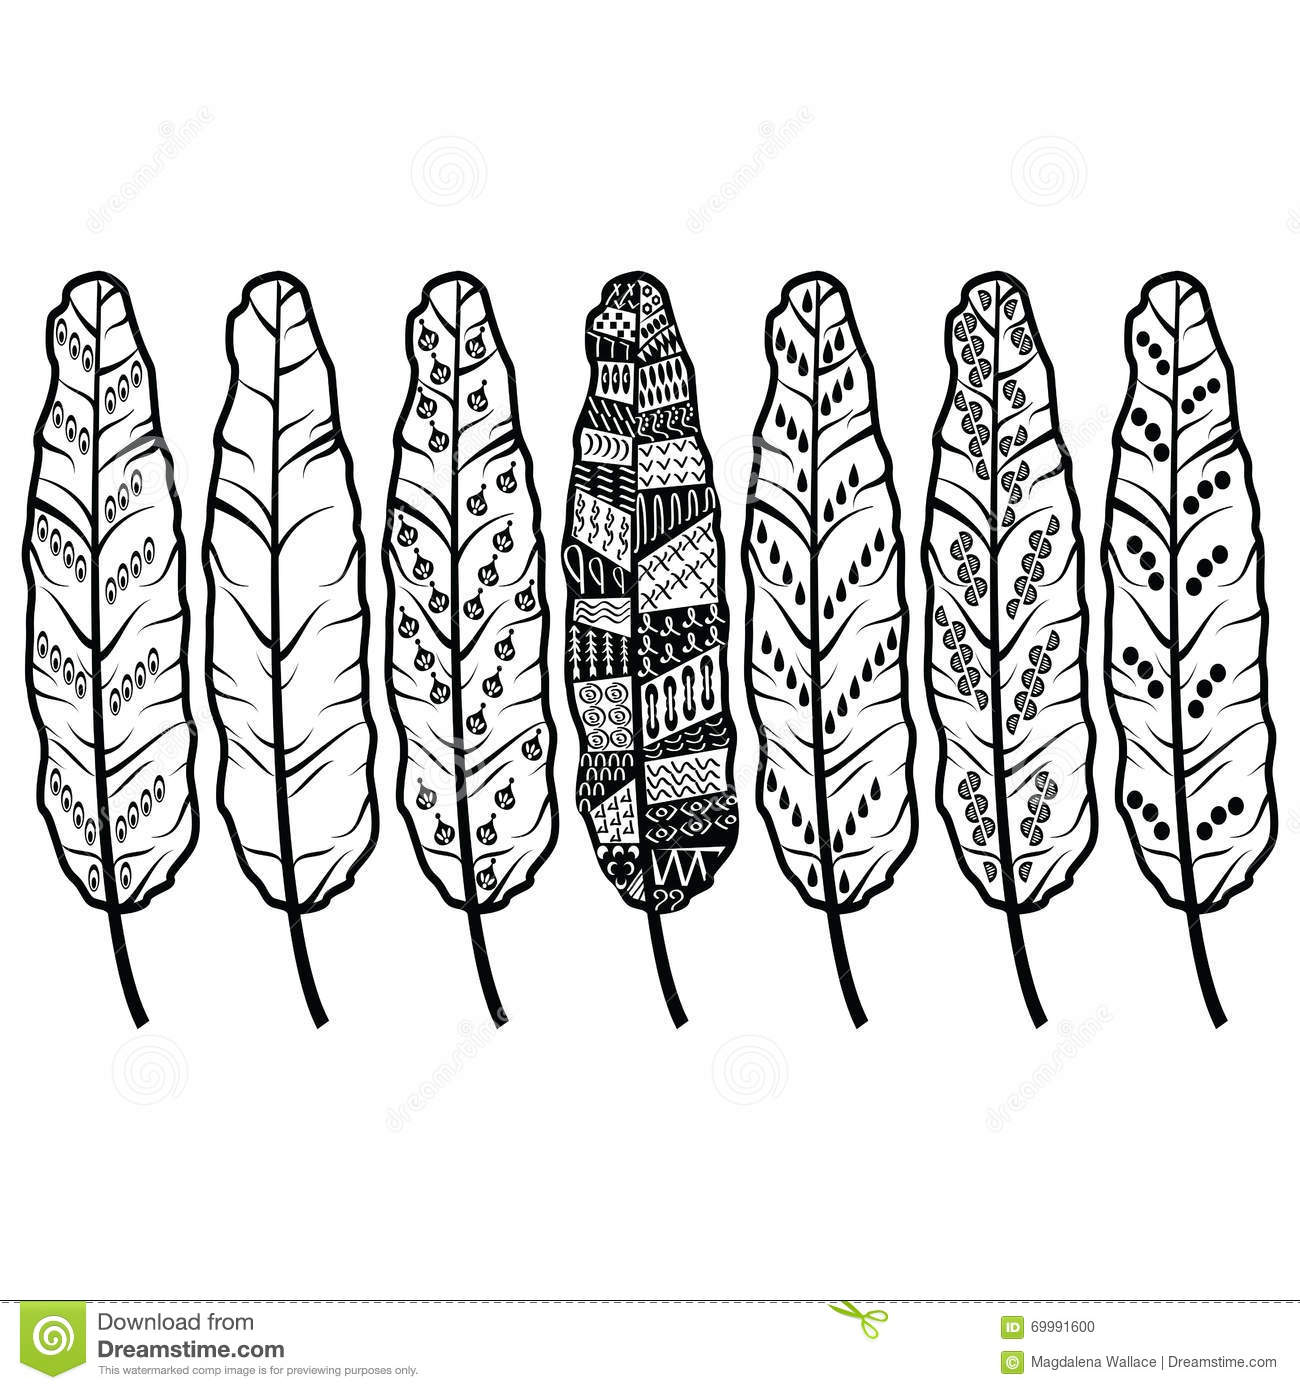 Native american ornaments - Aztec Culture Tribal Feathers In Native American Ornaments Style In Black And White